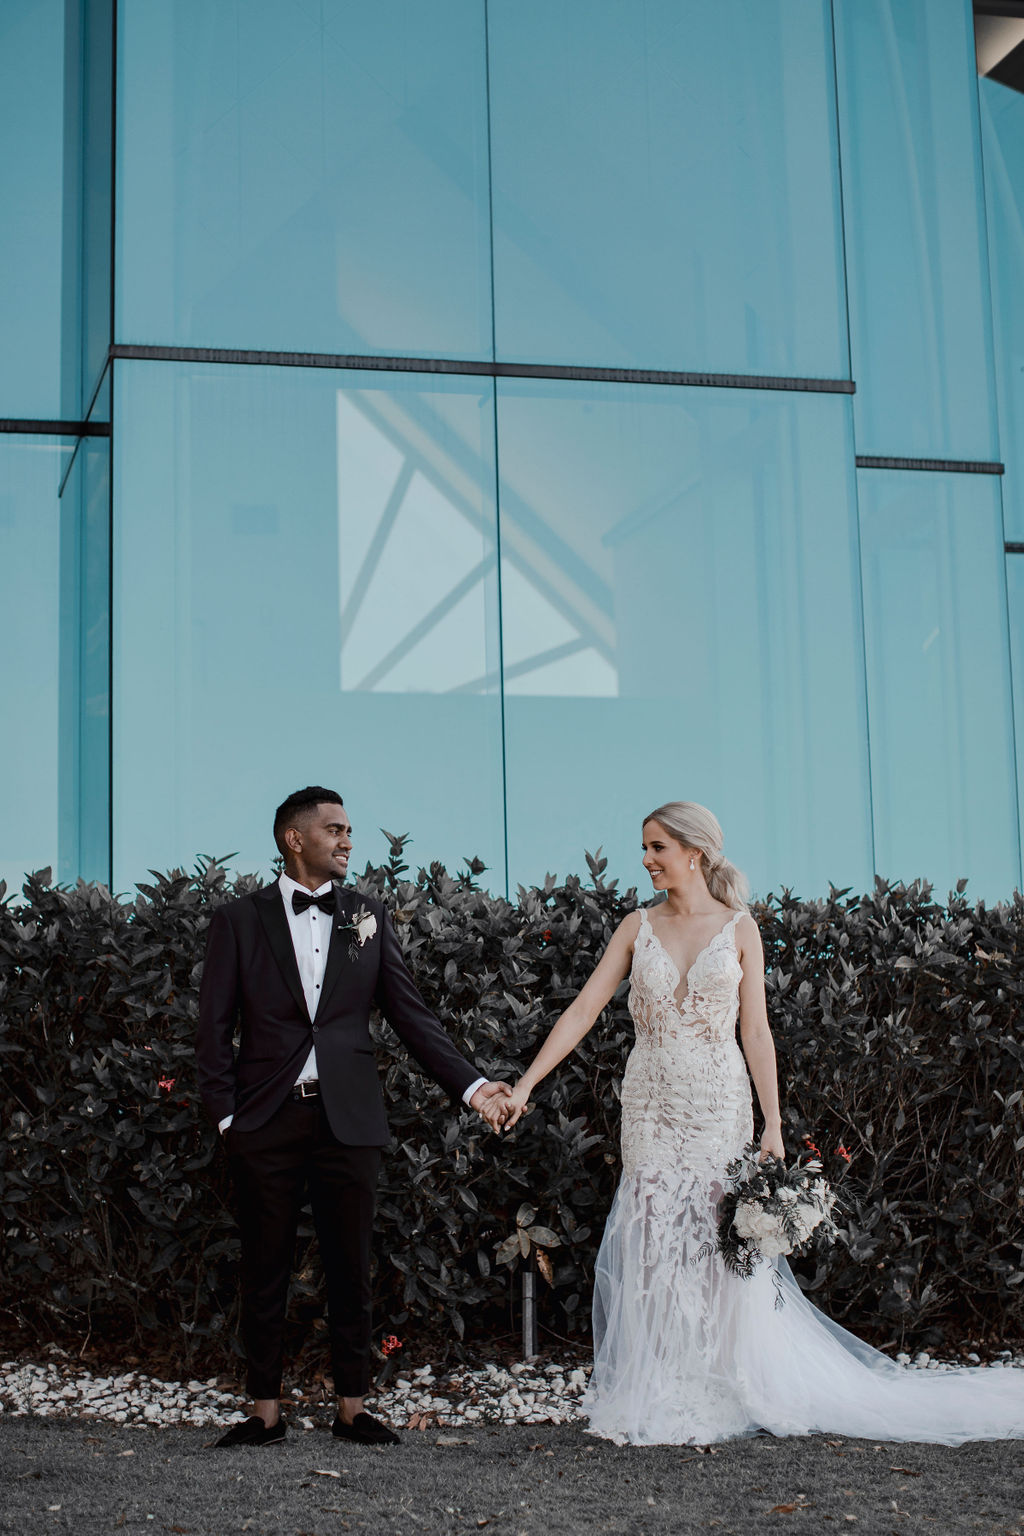 Dahlia and Grace Photography and Film weddings gold coast australia bridal gowns florals venue